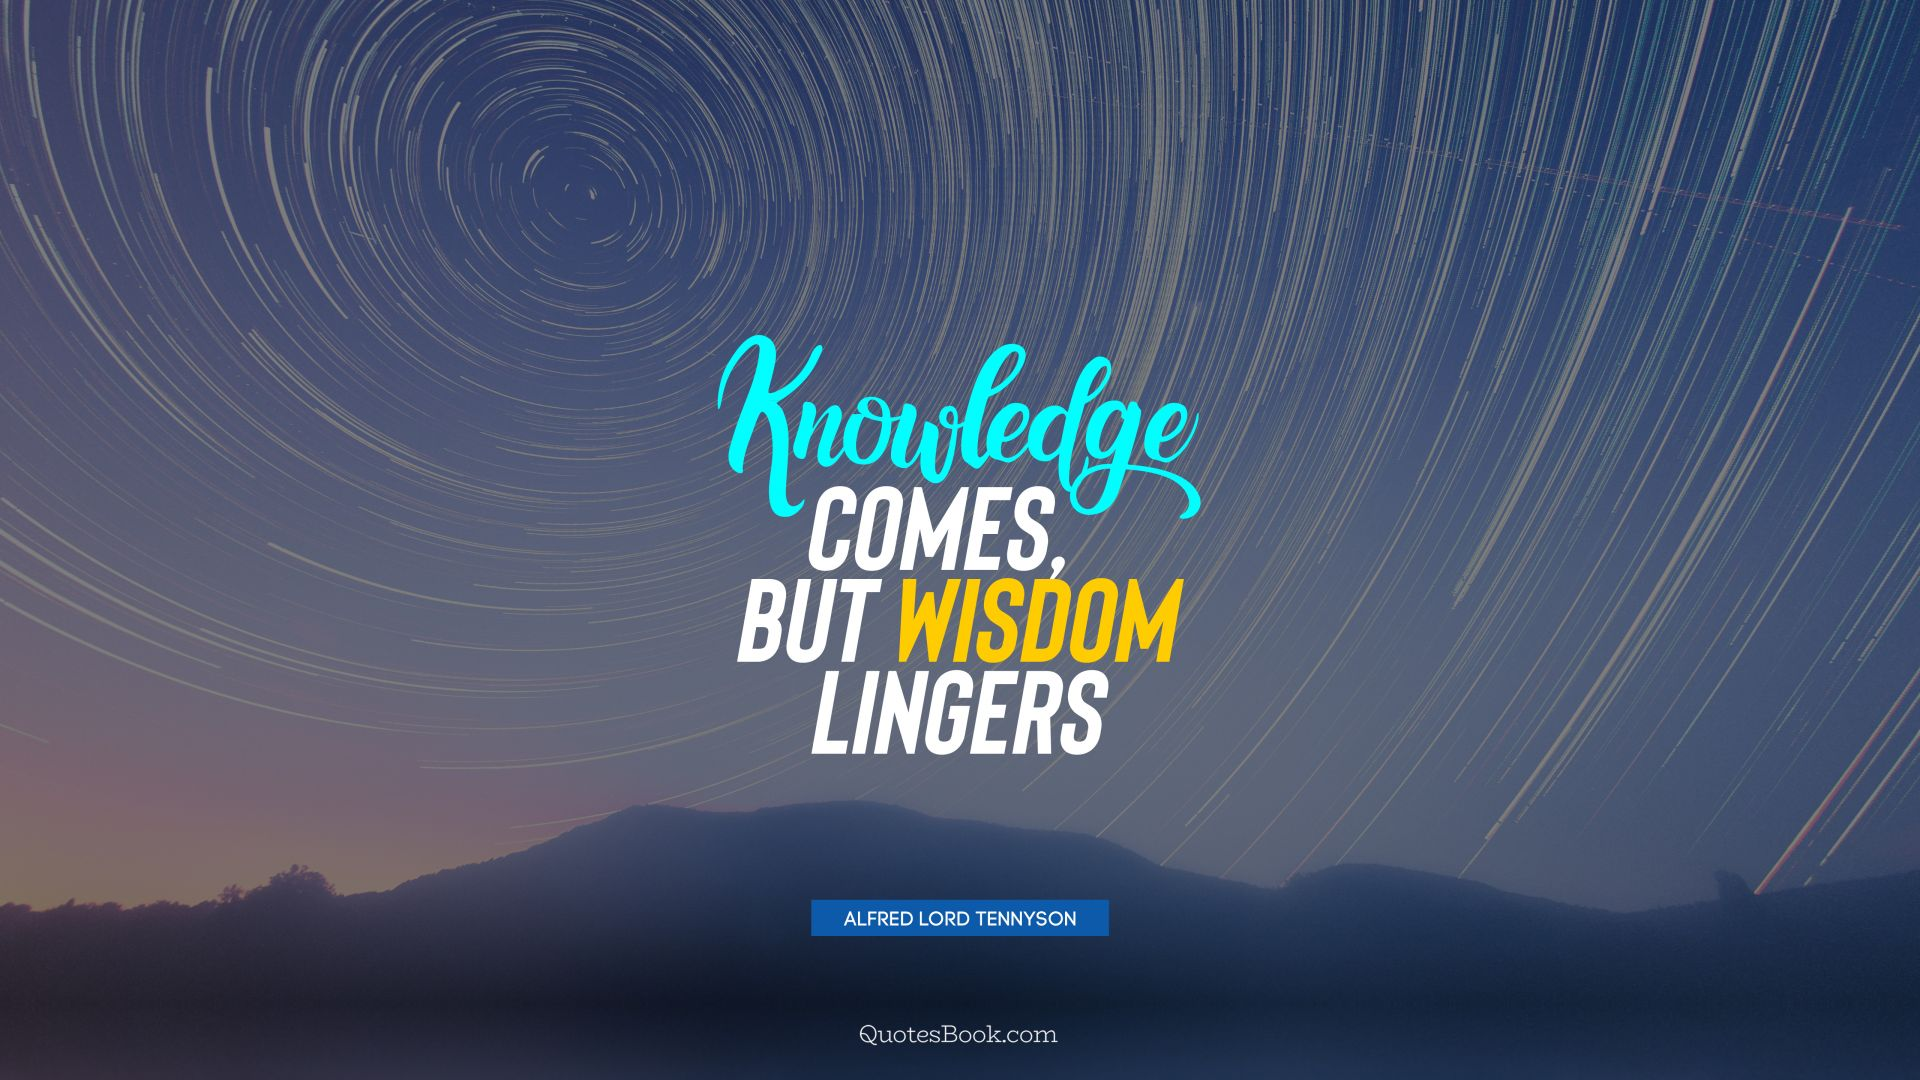 Knowledge comes, but wisdom lingers. - Quote by Alfred Lord Tennyson